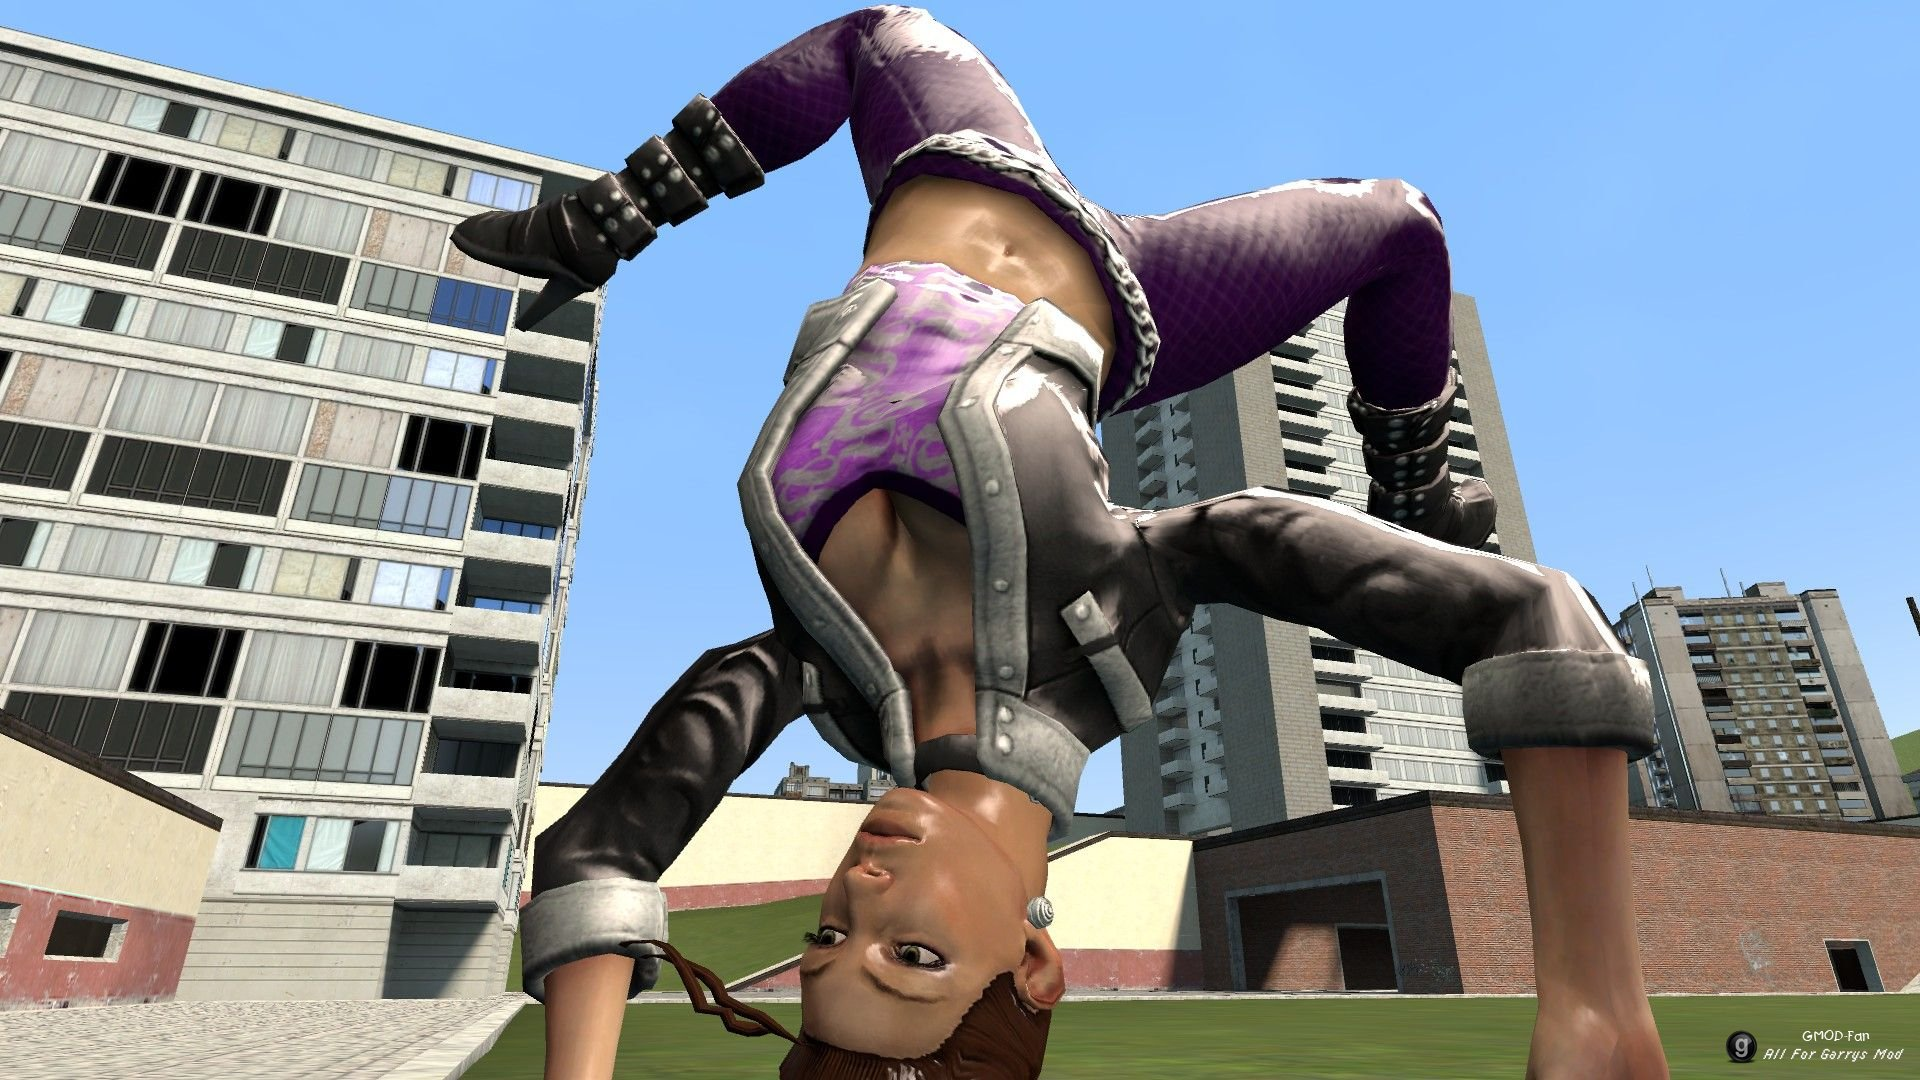 Saints row naked sex nackt pic